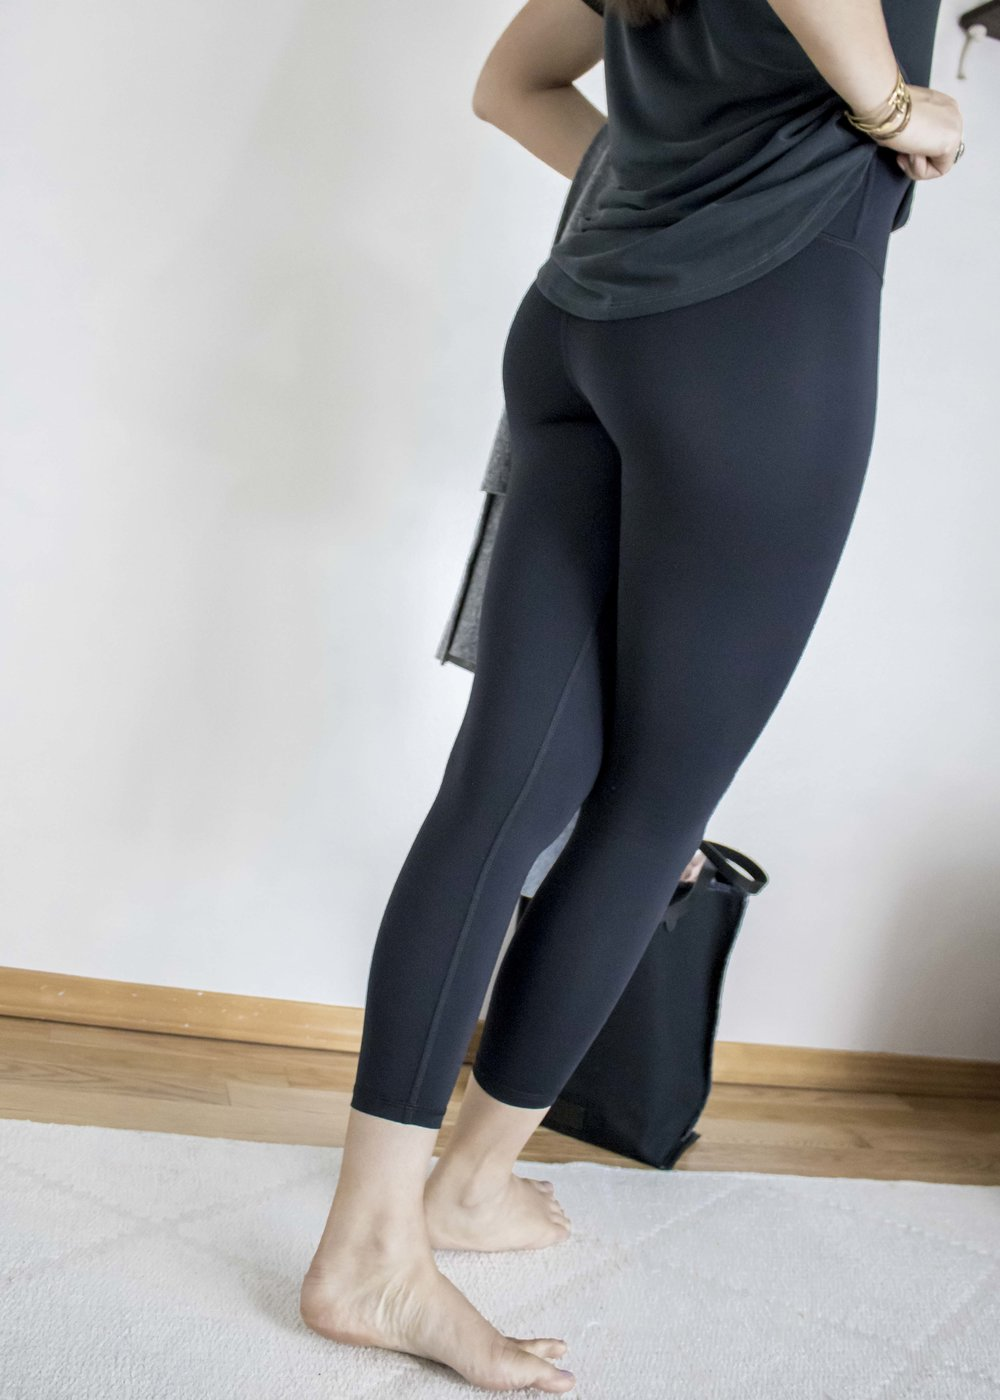 from studio to street, the SECOND SKIN LEGGING by joah brown is our go-to performance style legging. the technical fabrication is super stretchy, stays in place, keeps you cool, and is completely opaque. -